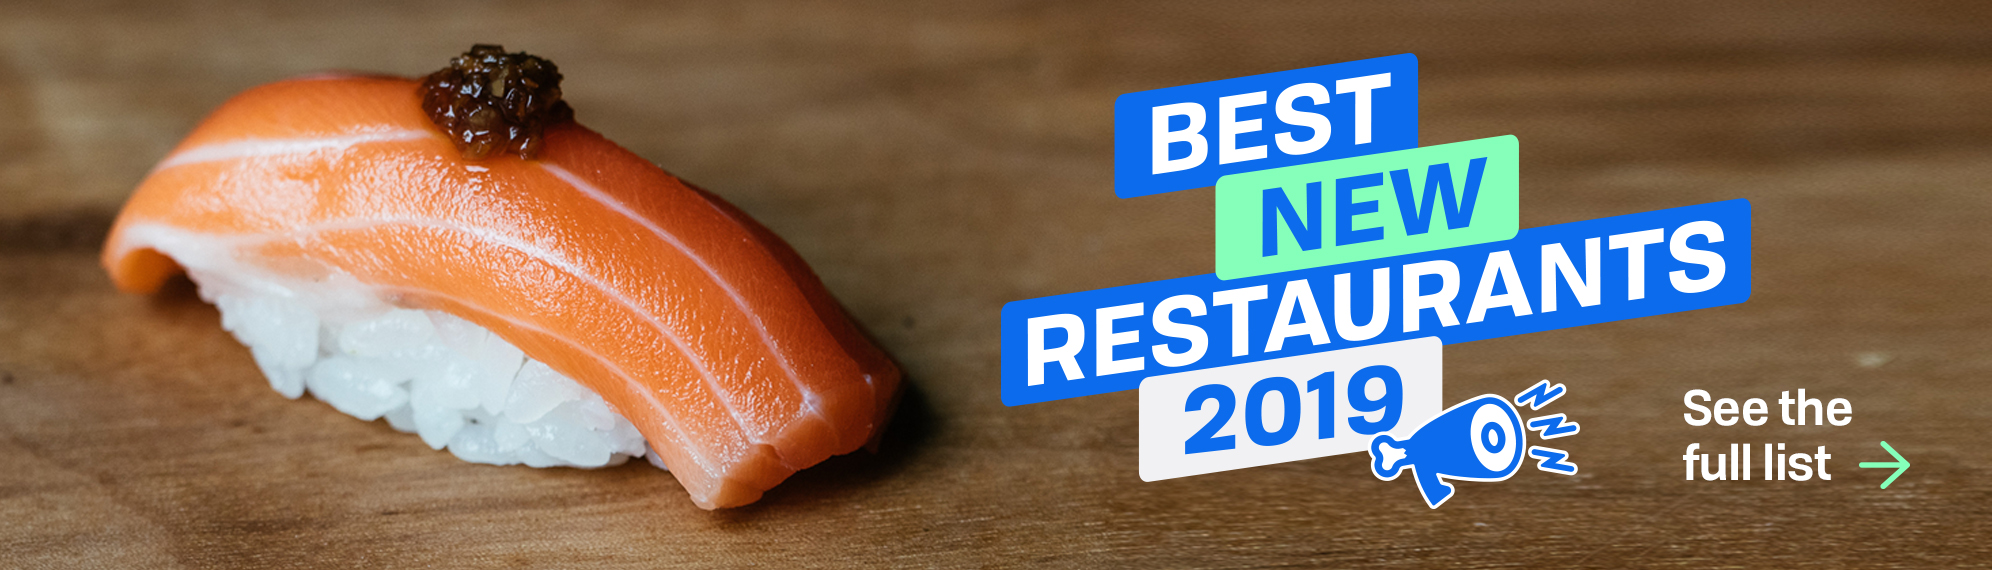 See the full list of Chicago's Best Restaurants Of 2019.